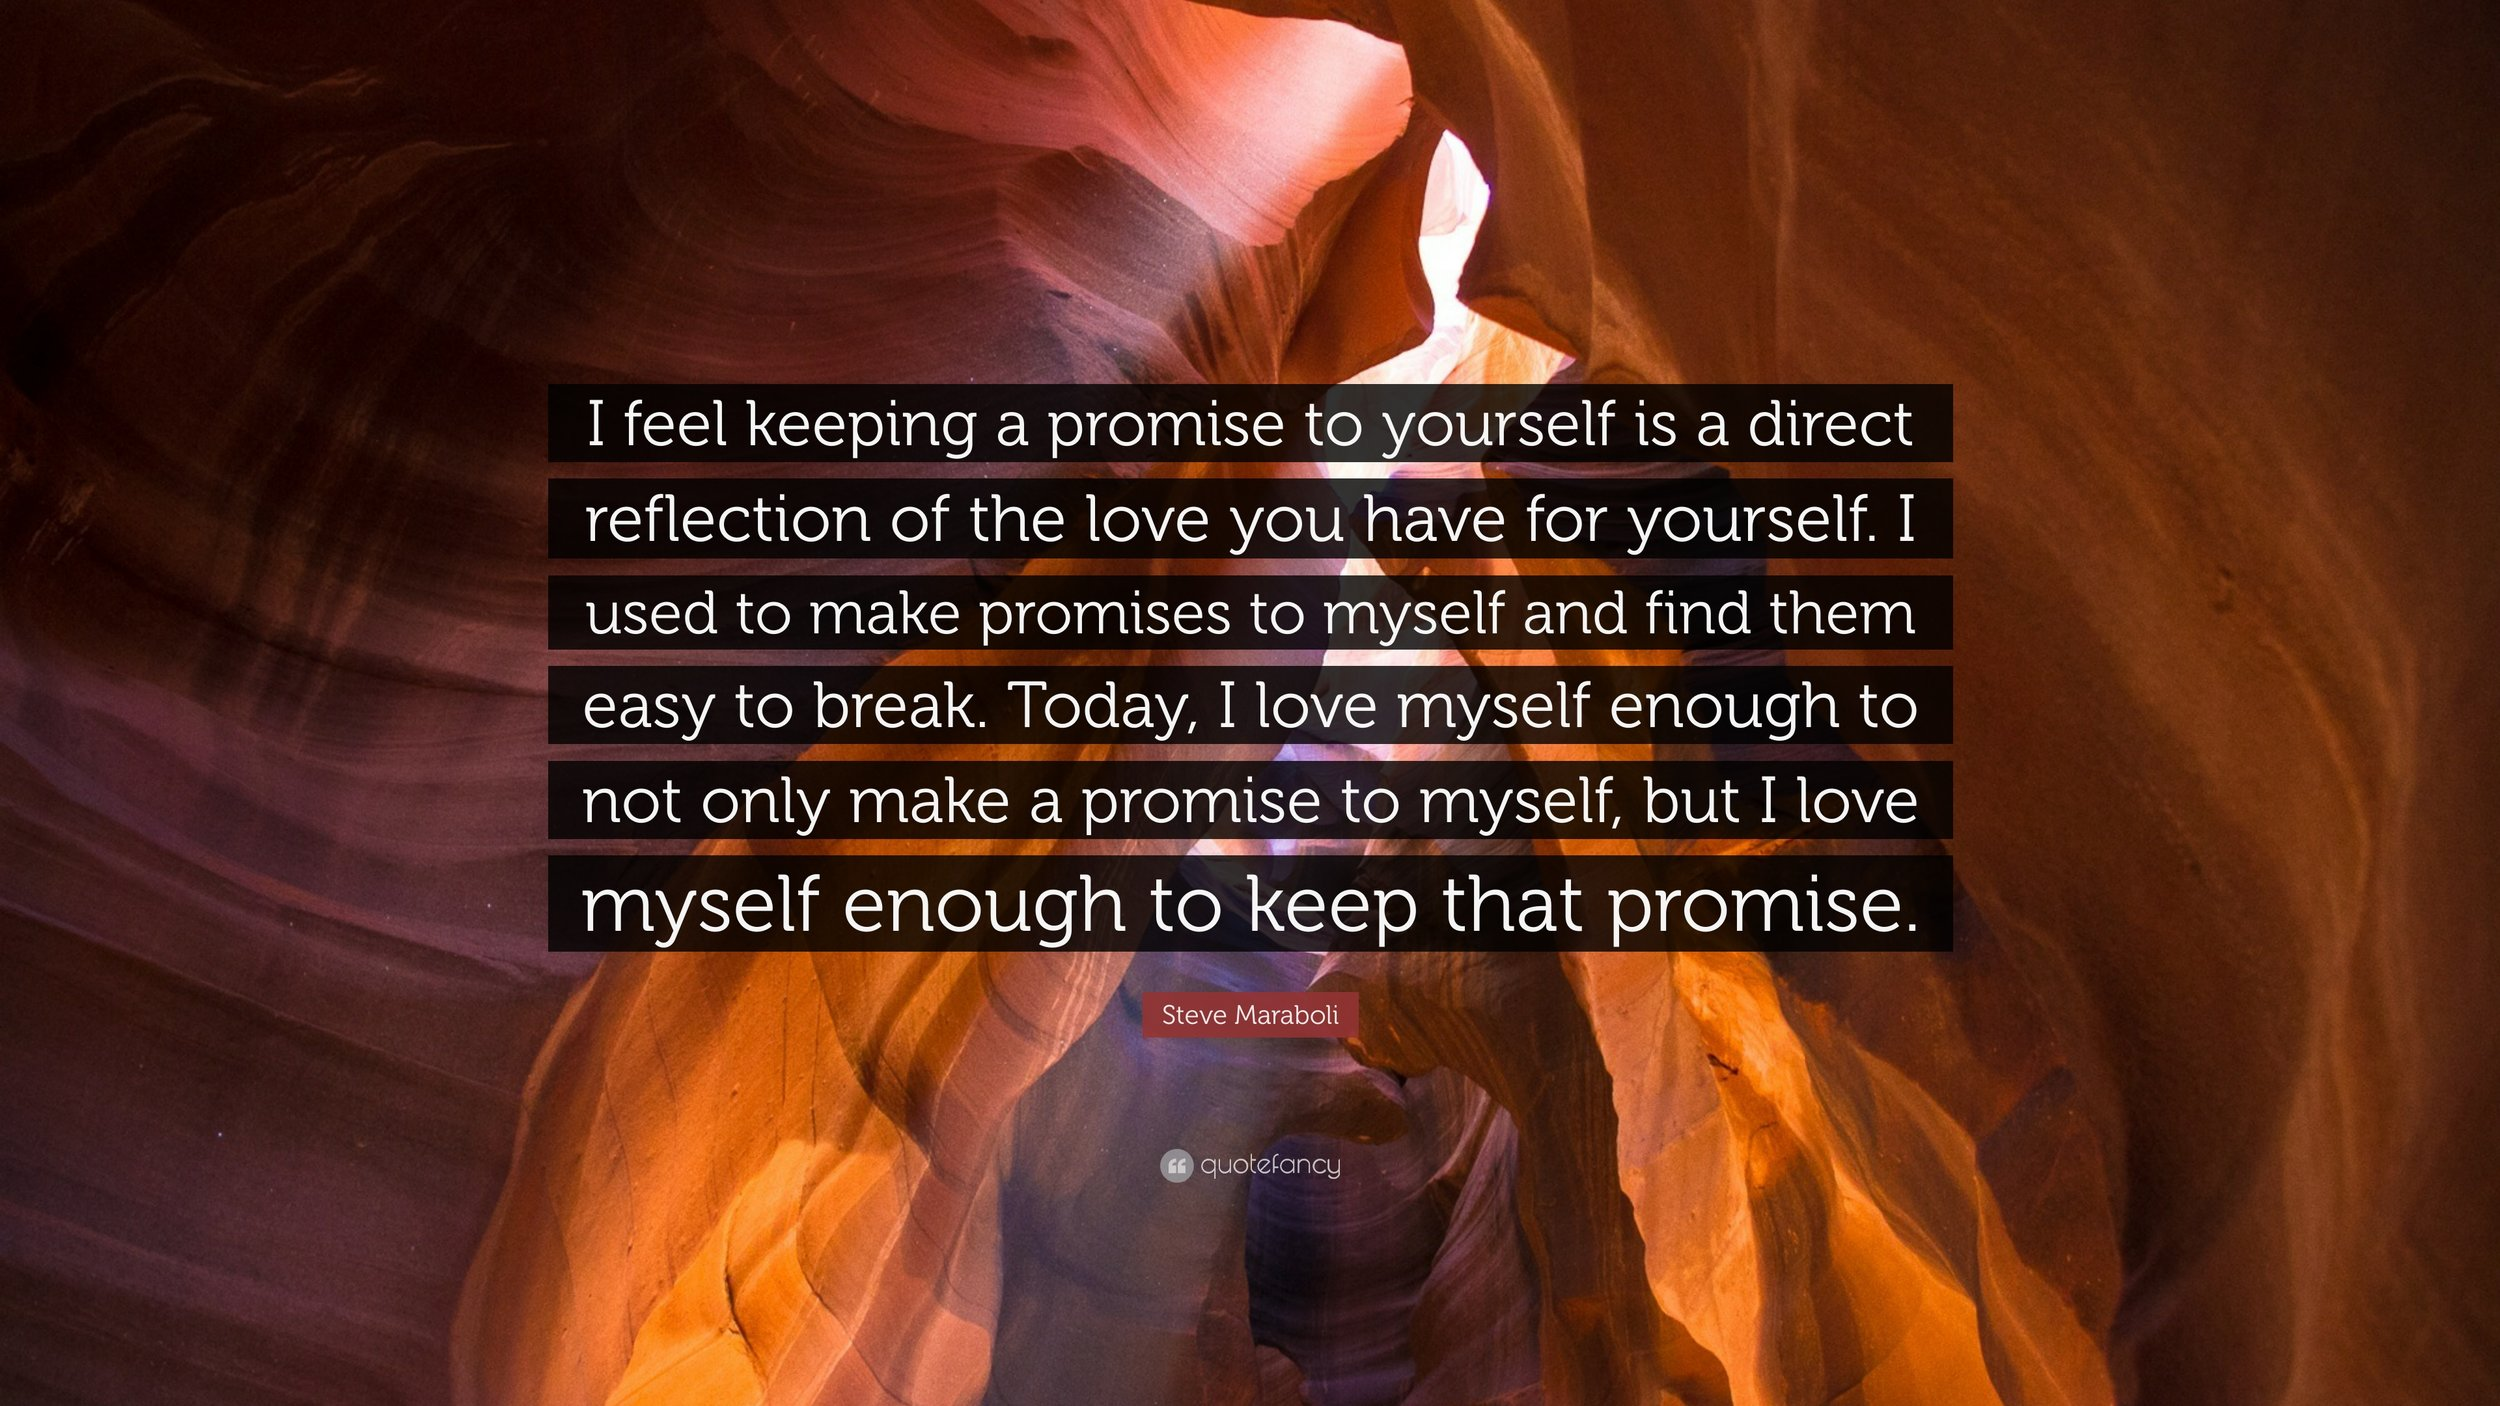 370297-Steve-Maraboli-Quote-I-feel-keeping-a-promise-to-yourself-is-a.jpg